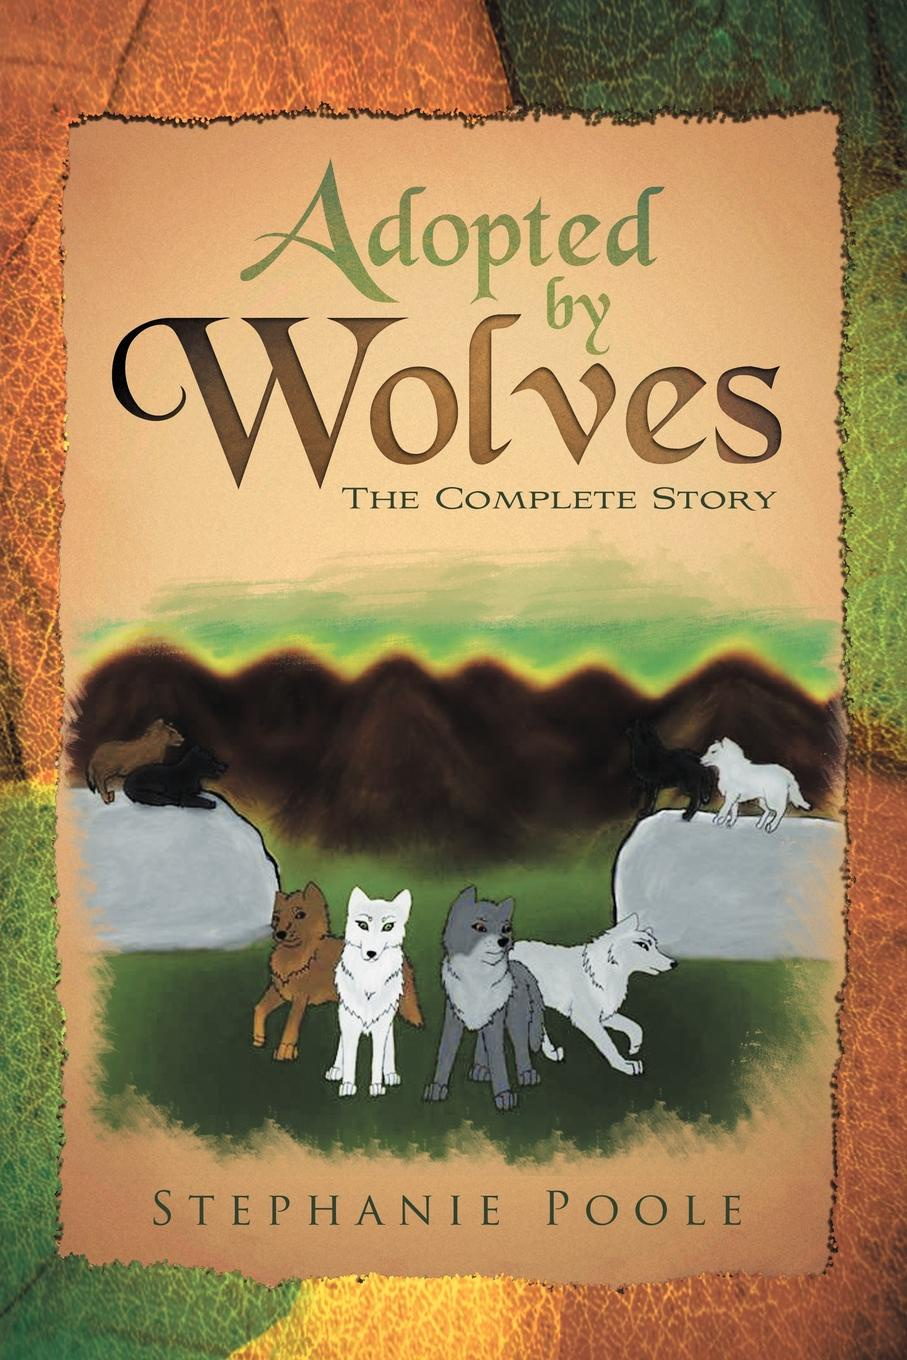 Stephanie Poole Adopted by Wolves. The Complete Story bad wolves